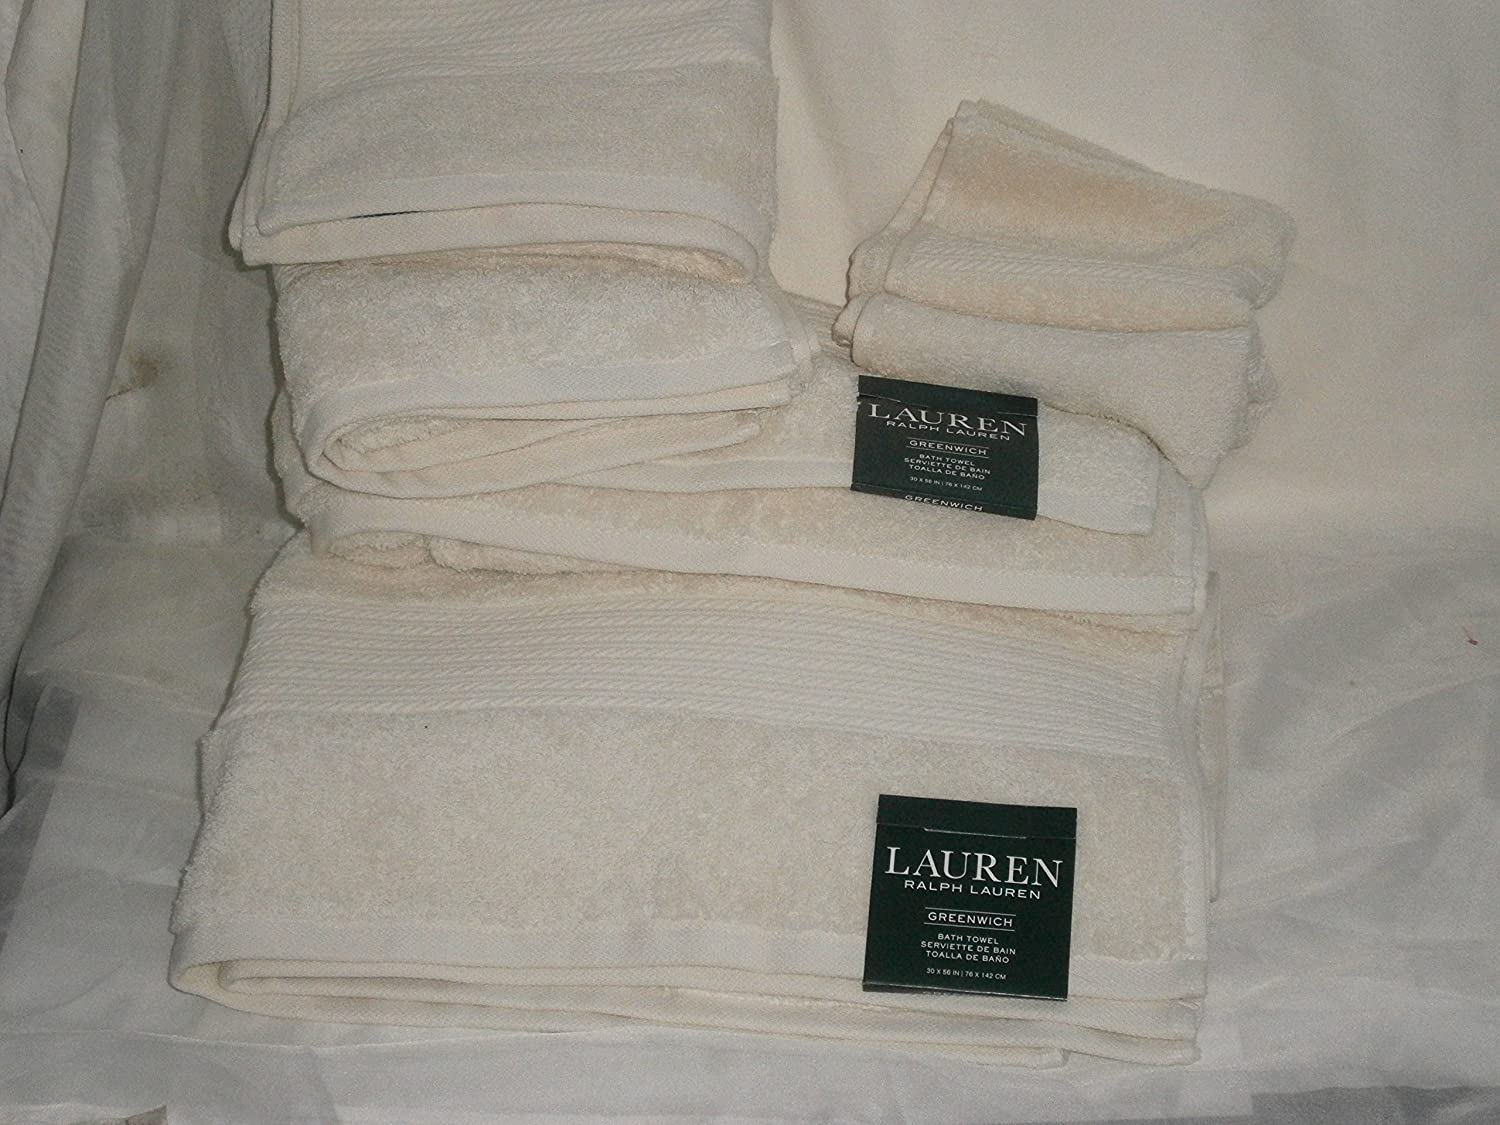 Amazon.com: RLauren Lauren Greenwich 6 pc TOWEL Set CREAM/Off White=2 bath 2 hand 2 washcloths: Home & Kitchen